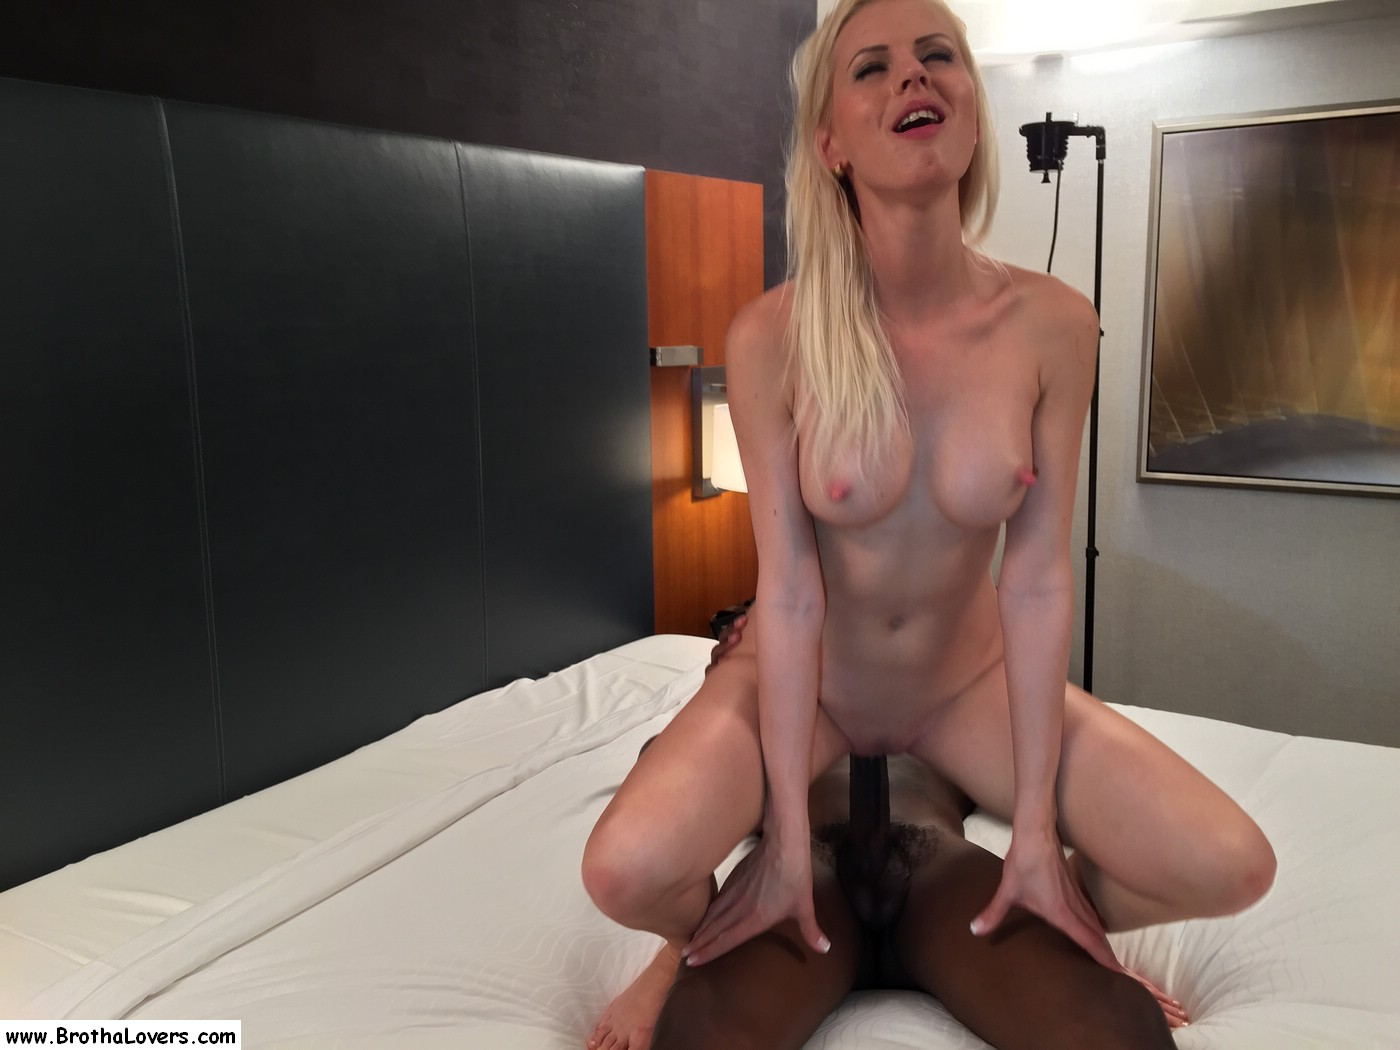 Cuckold wife in hotel with bbc - 1 6